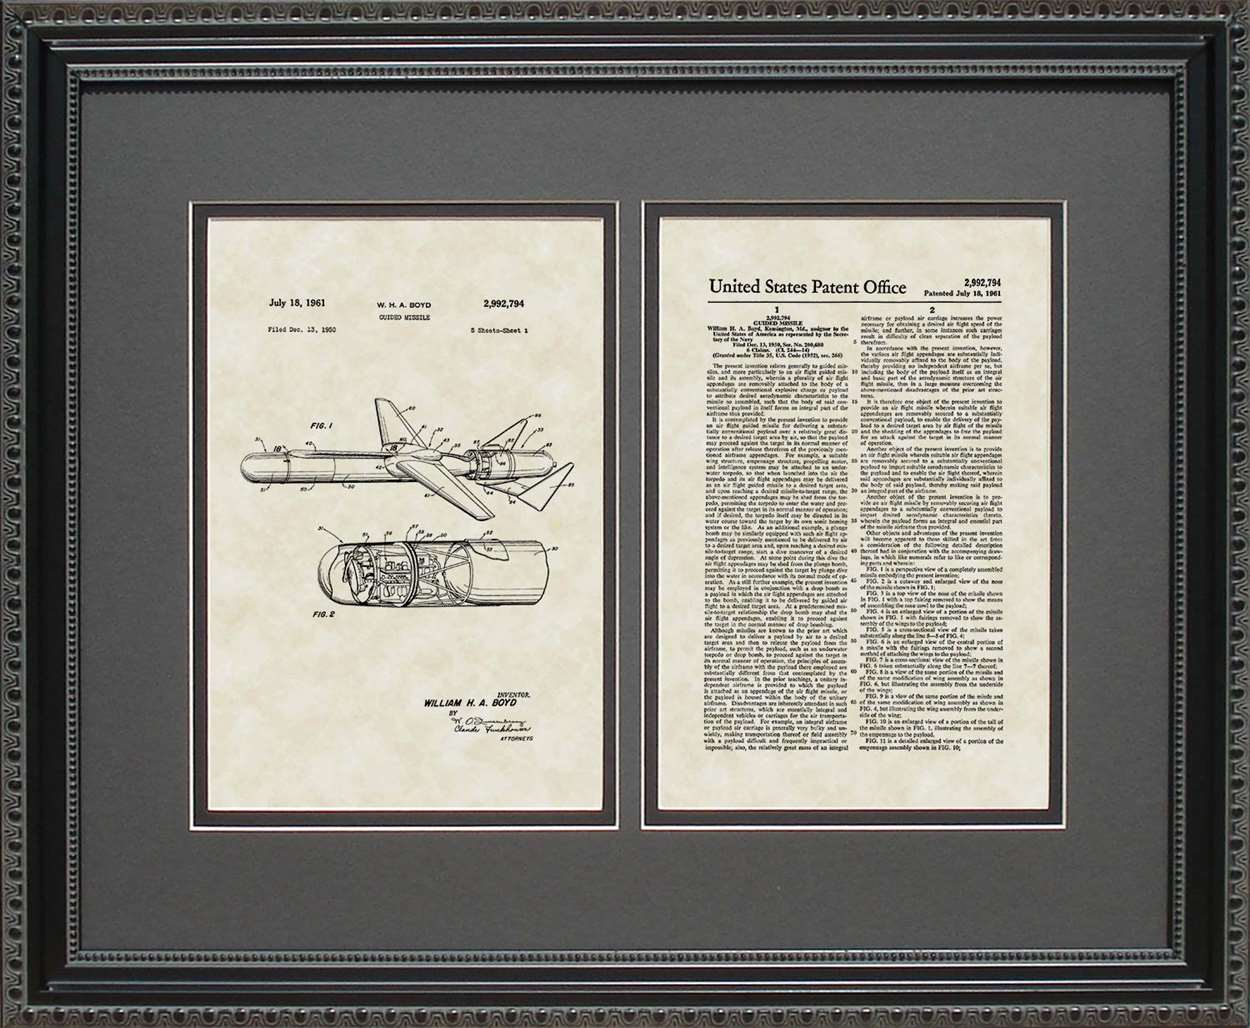 Guided Missle Patent, Art & Copy, Boyd, 1961, 16x20